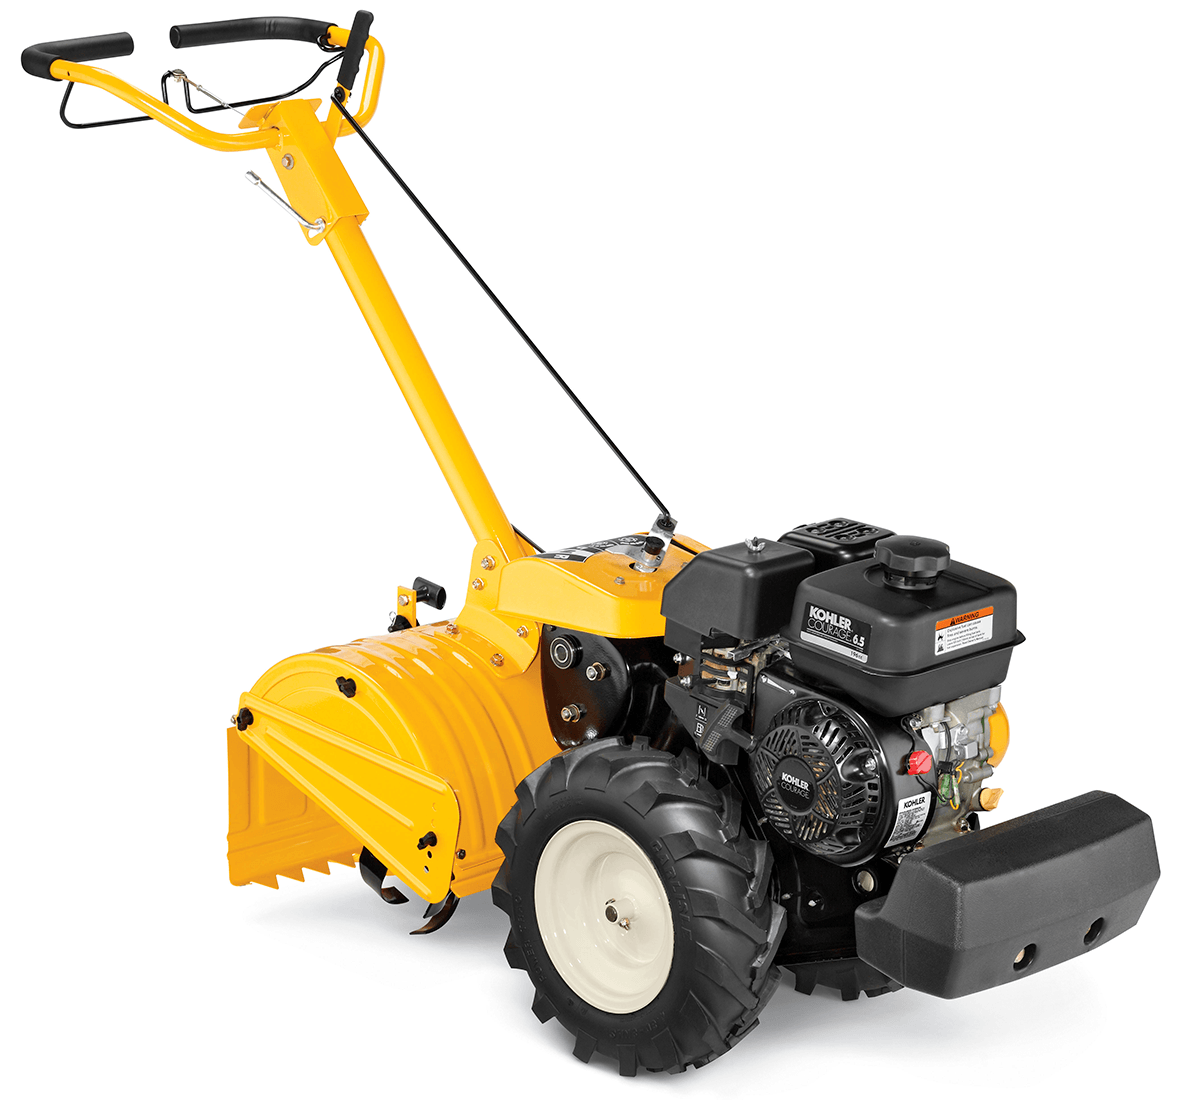 2018 Cub Cadet RT 65 Garden Tiller in Glasgow, Kentucky